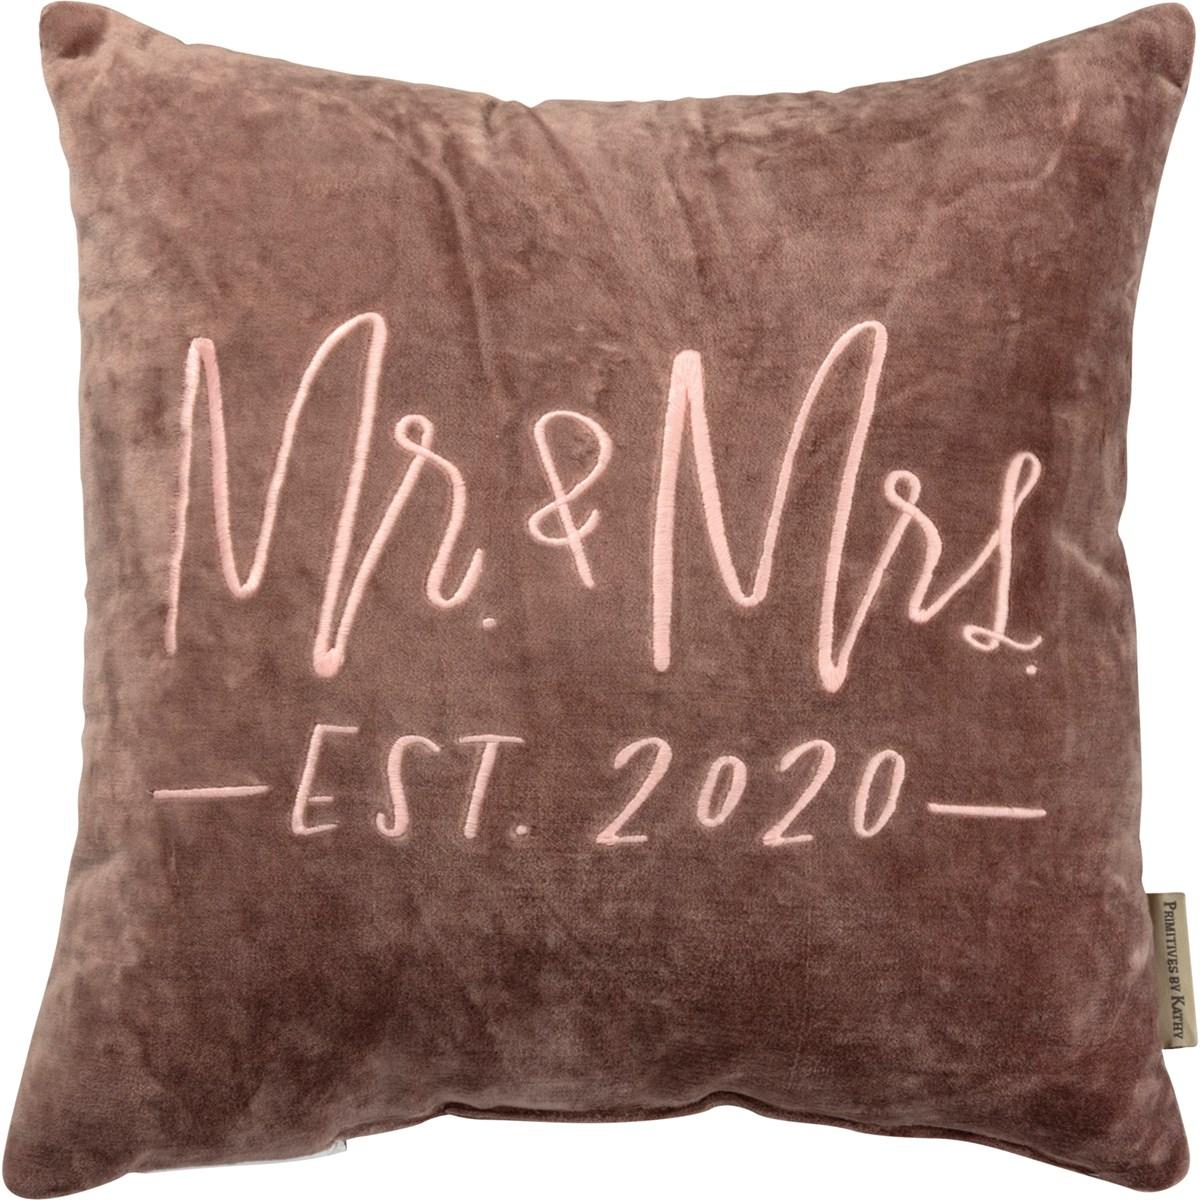 "Pillow - Mr. & Mrs. Est. 2020 - 15"" x 15"" - Velvet"